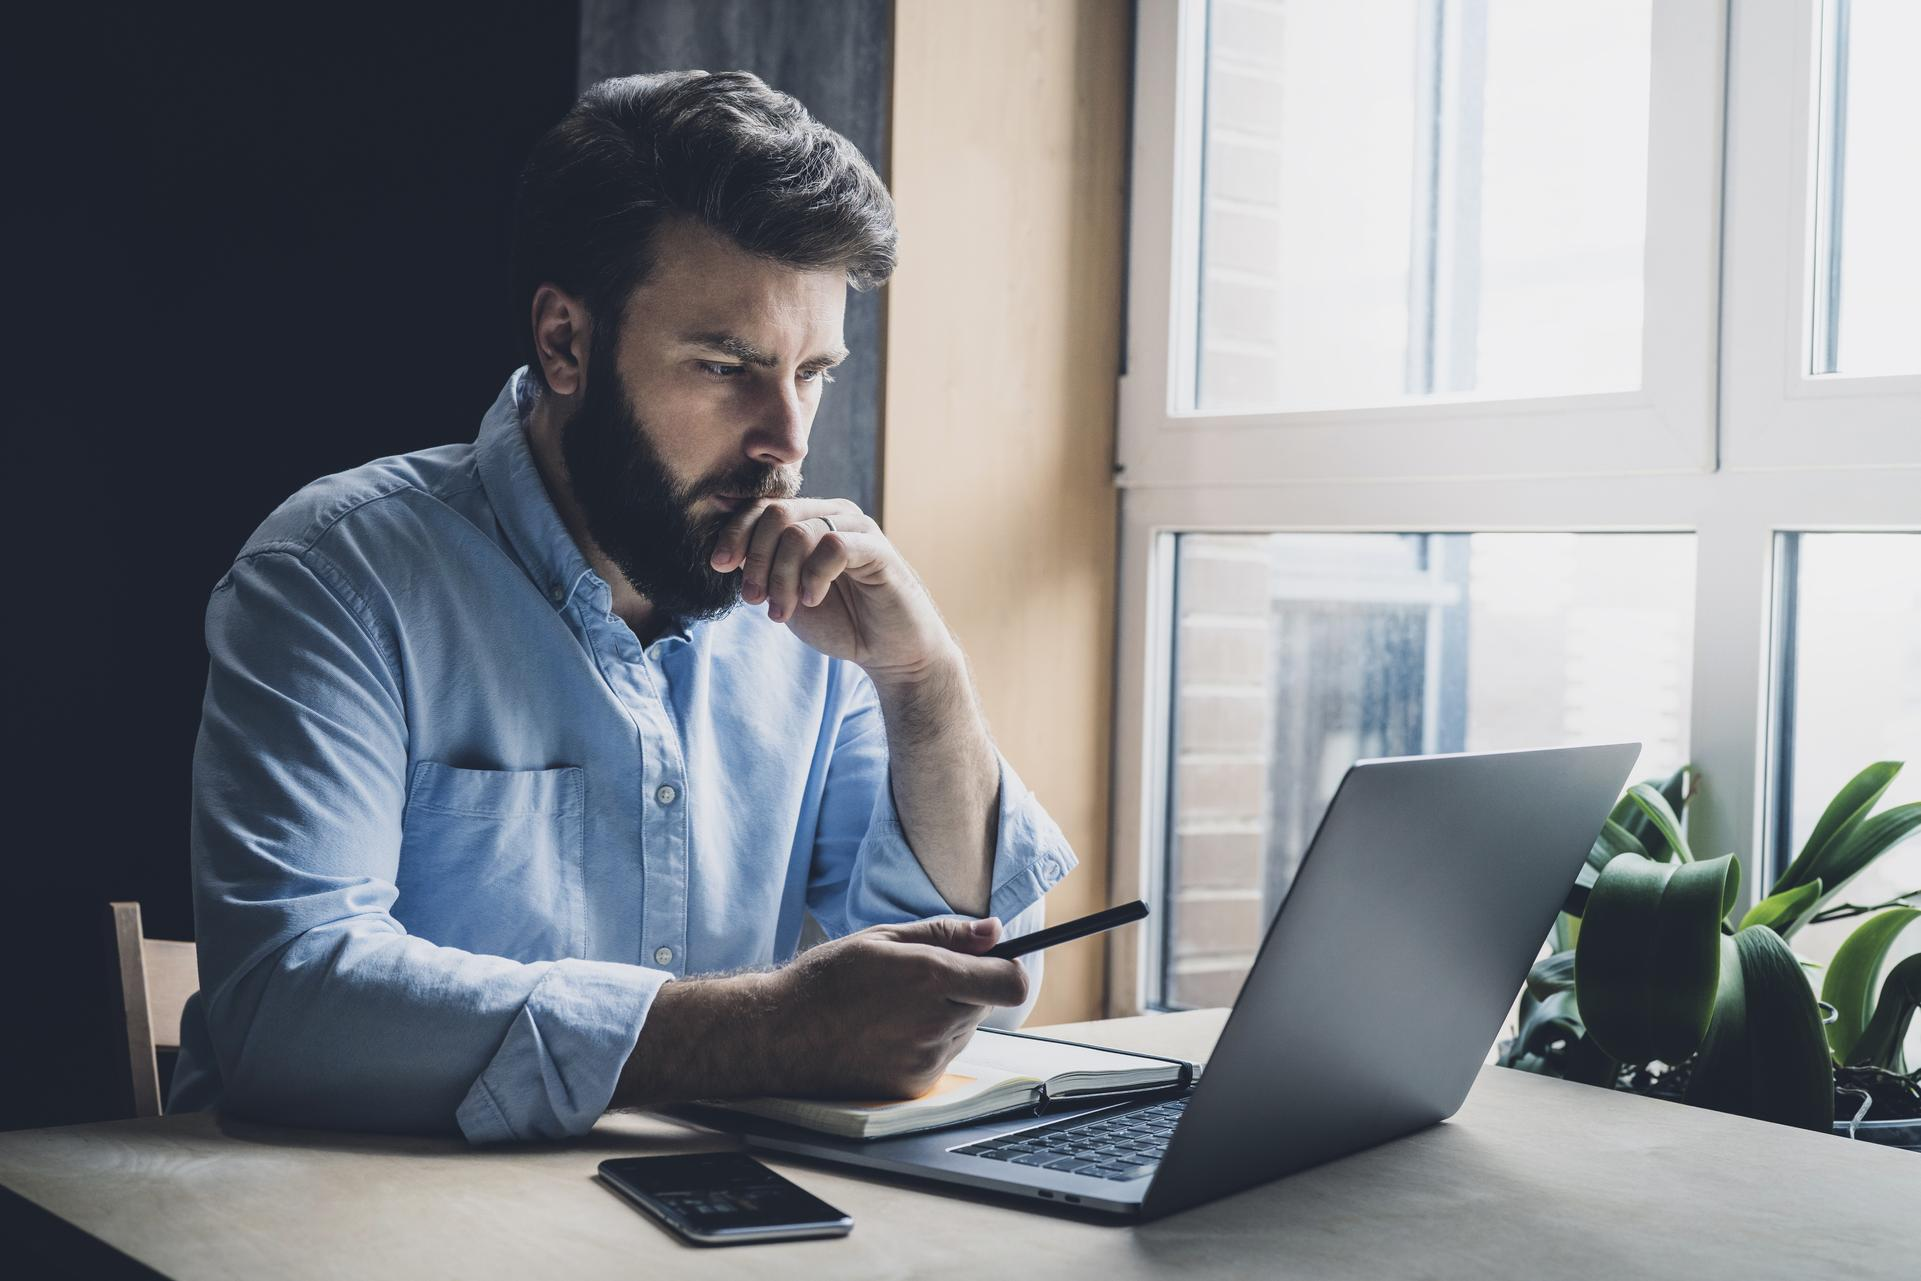 Man studying a computer